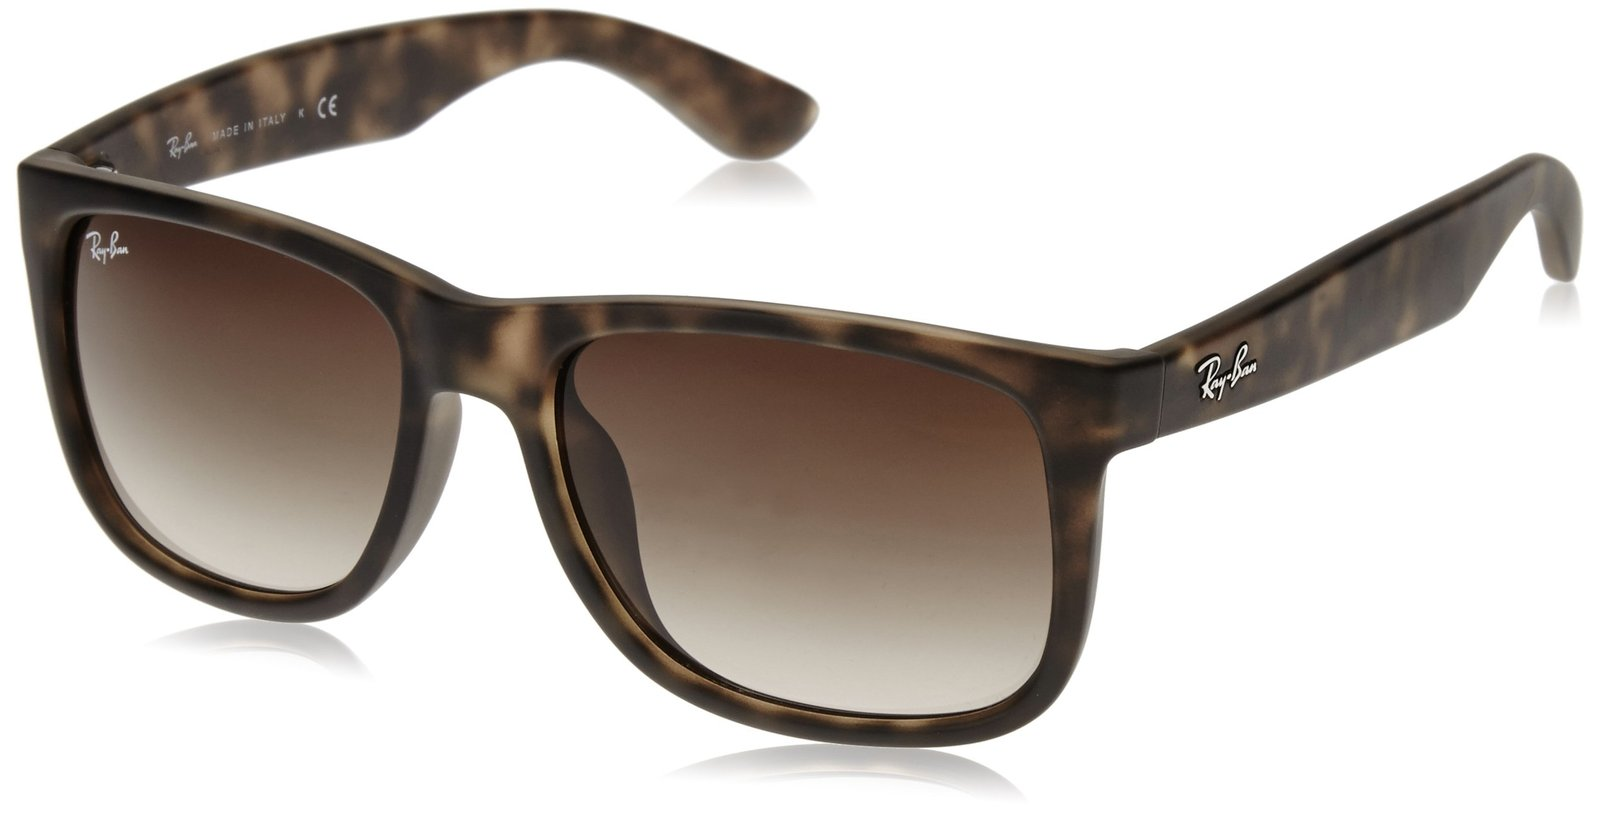 c69a877de91 Ray-Ban Men s Justin Rectangular Sunglasses Tortoise Brown Gradient 55.2 mm  -  190.07